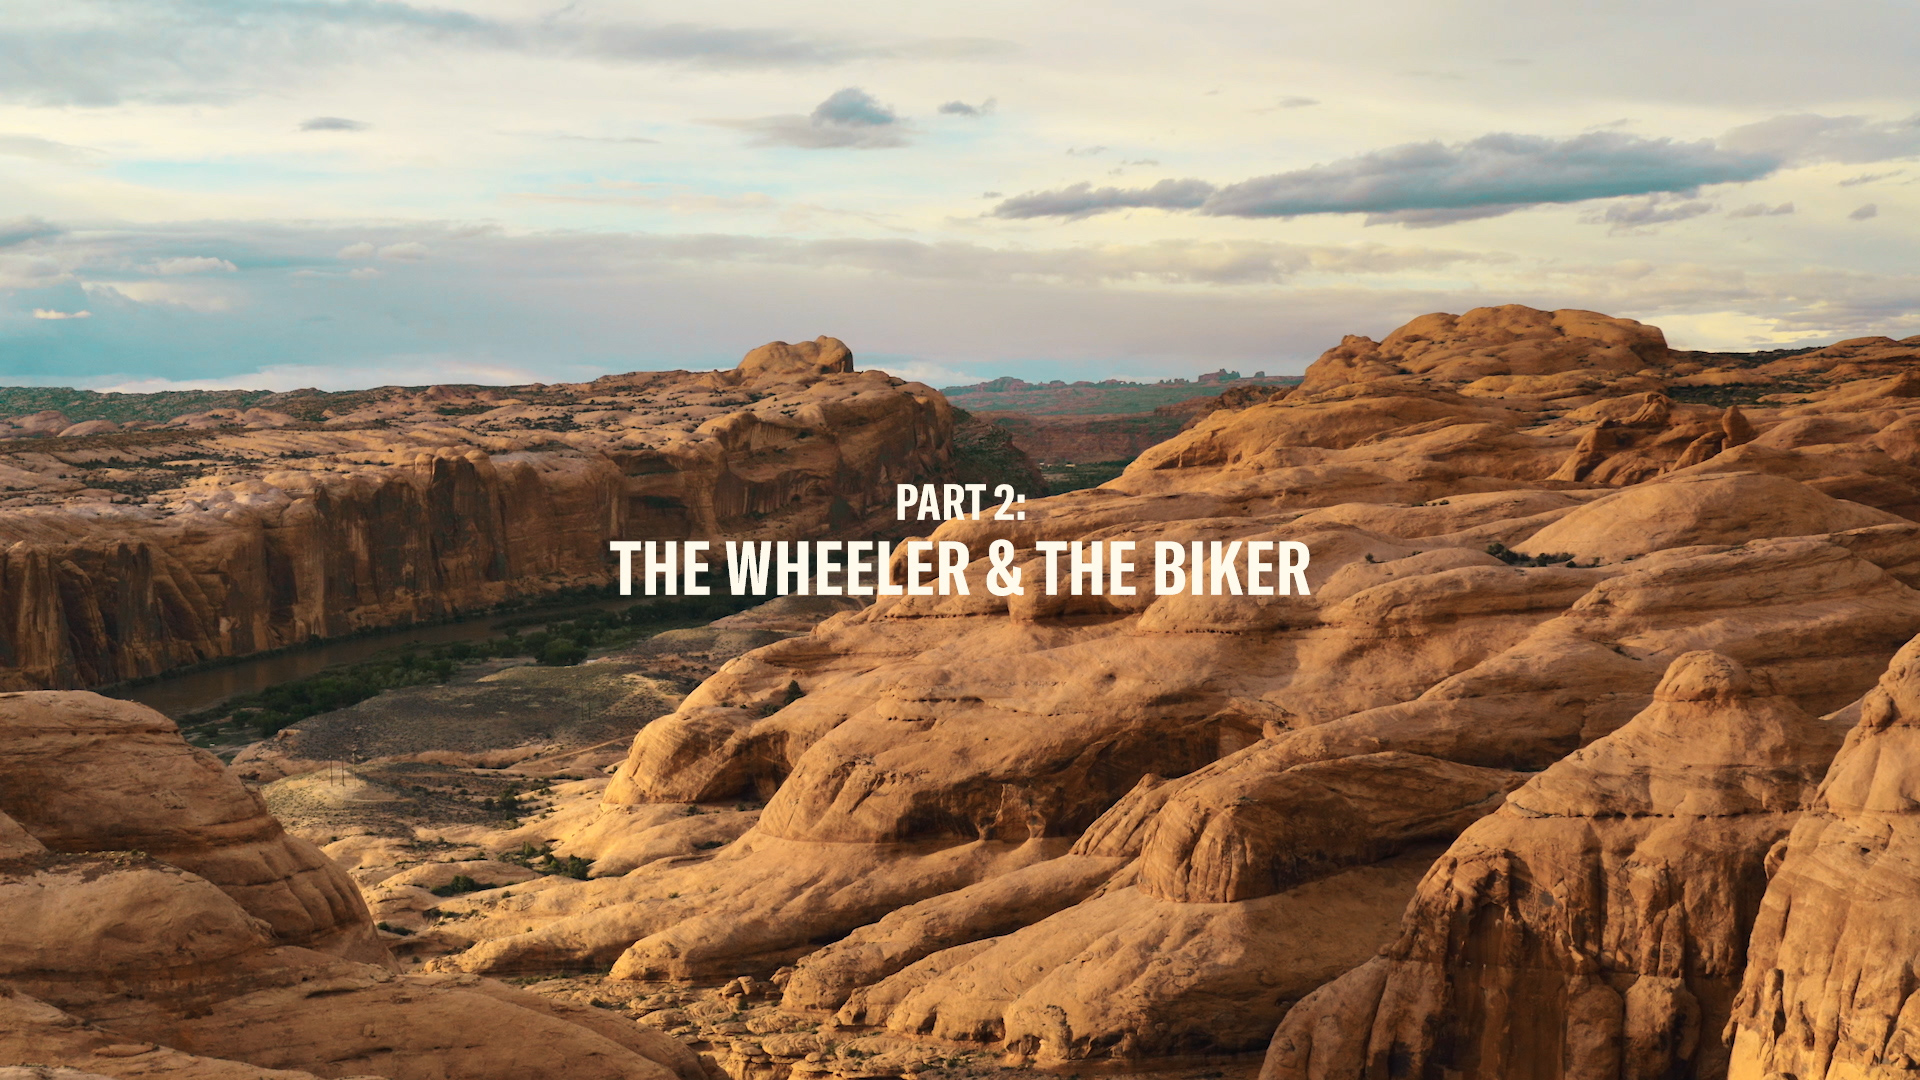 THE WHEELER & THE BIKER